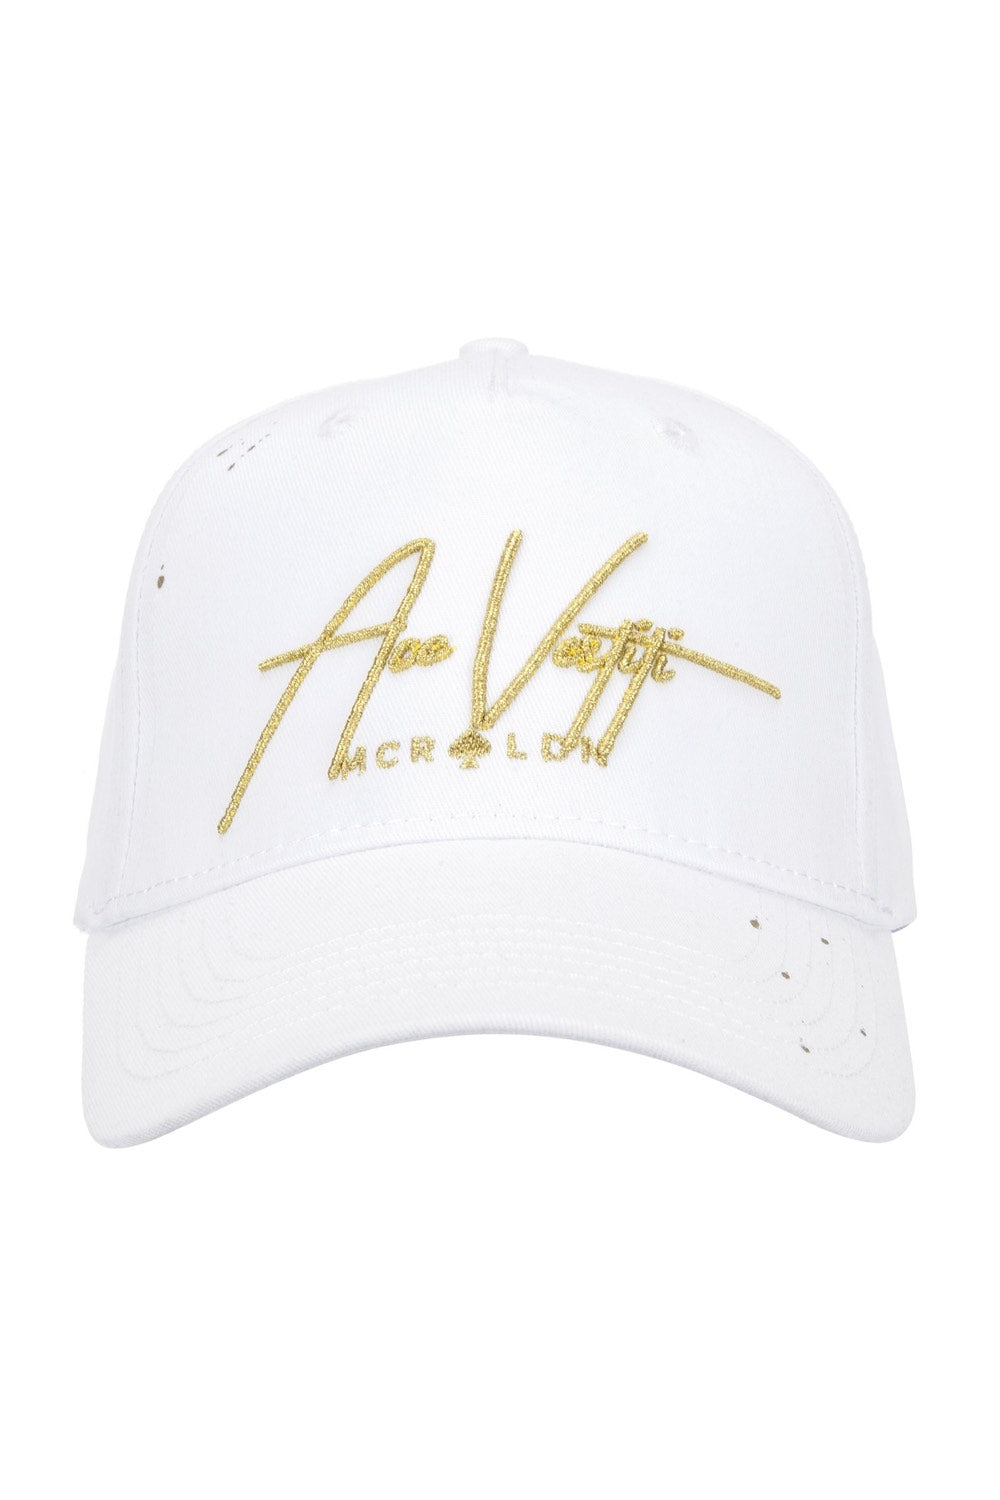 Ace Vestiti Signature BaseBall Cap - White/Gold - 1